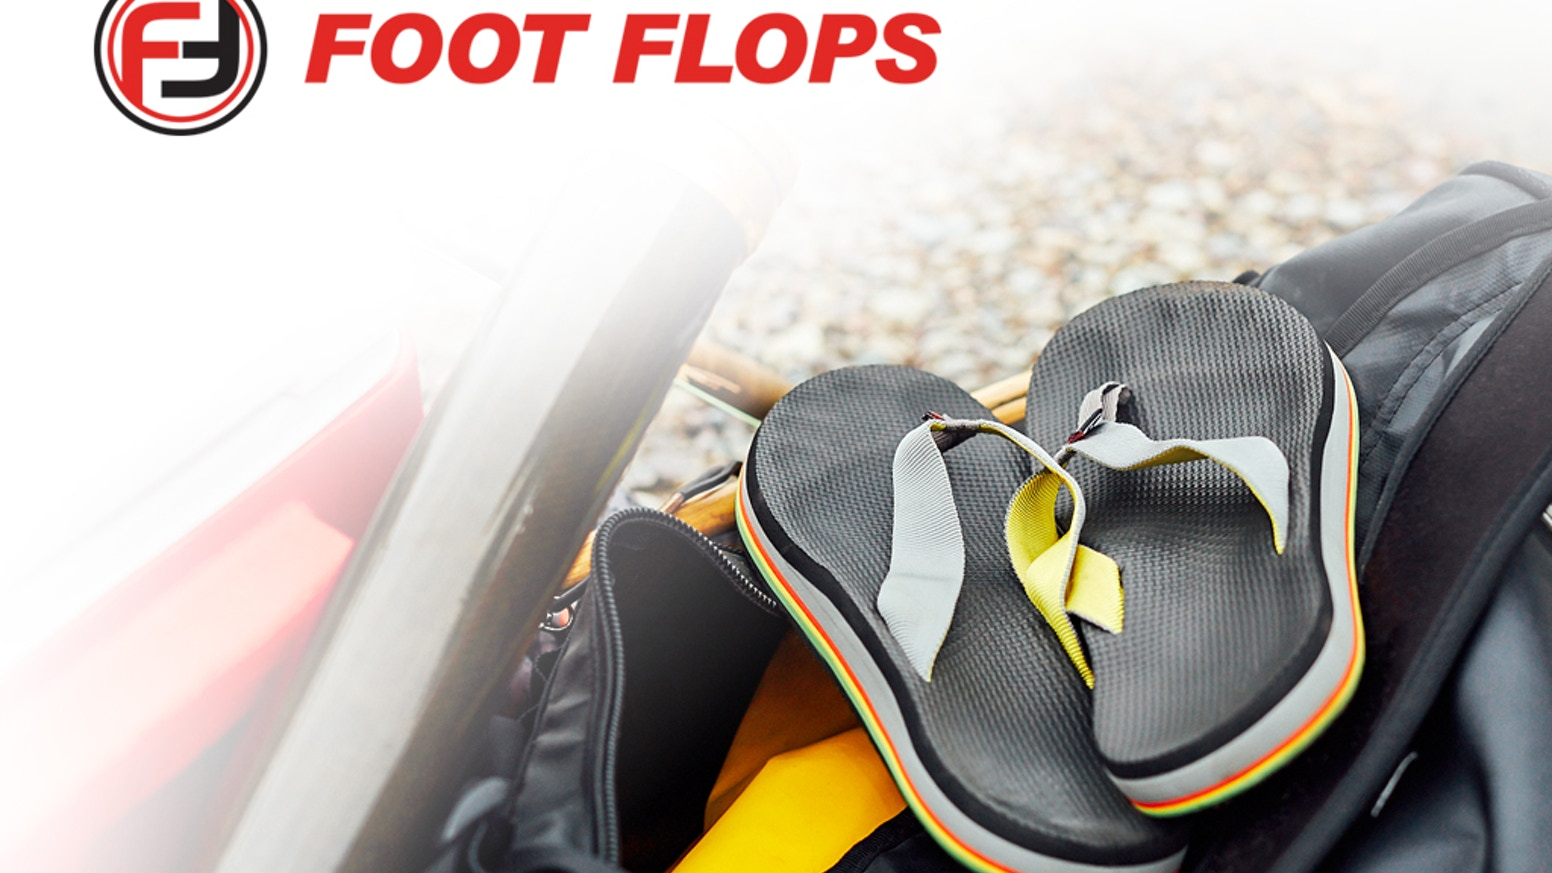 Foot Flops revolutionize footwear with its patent pending custom heat moldable flip flops that form to your feet in 15 minutes or less.